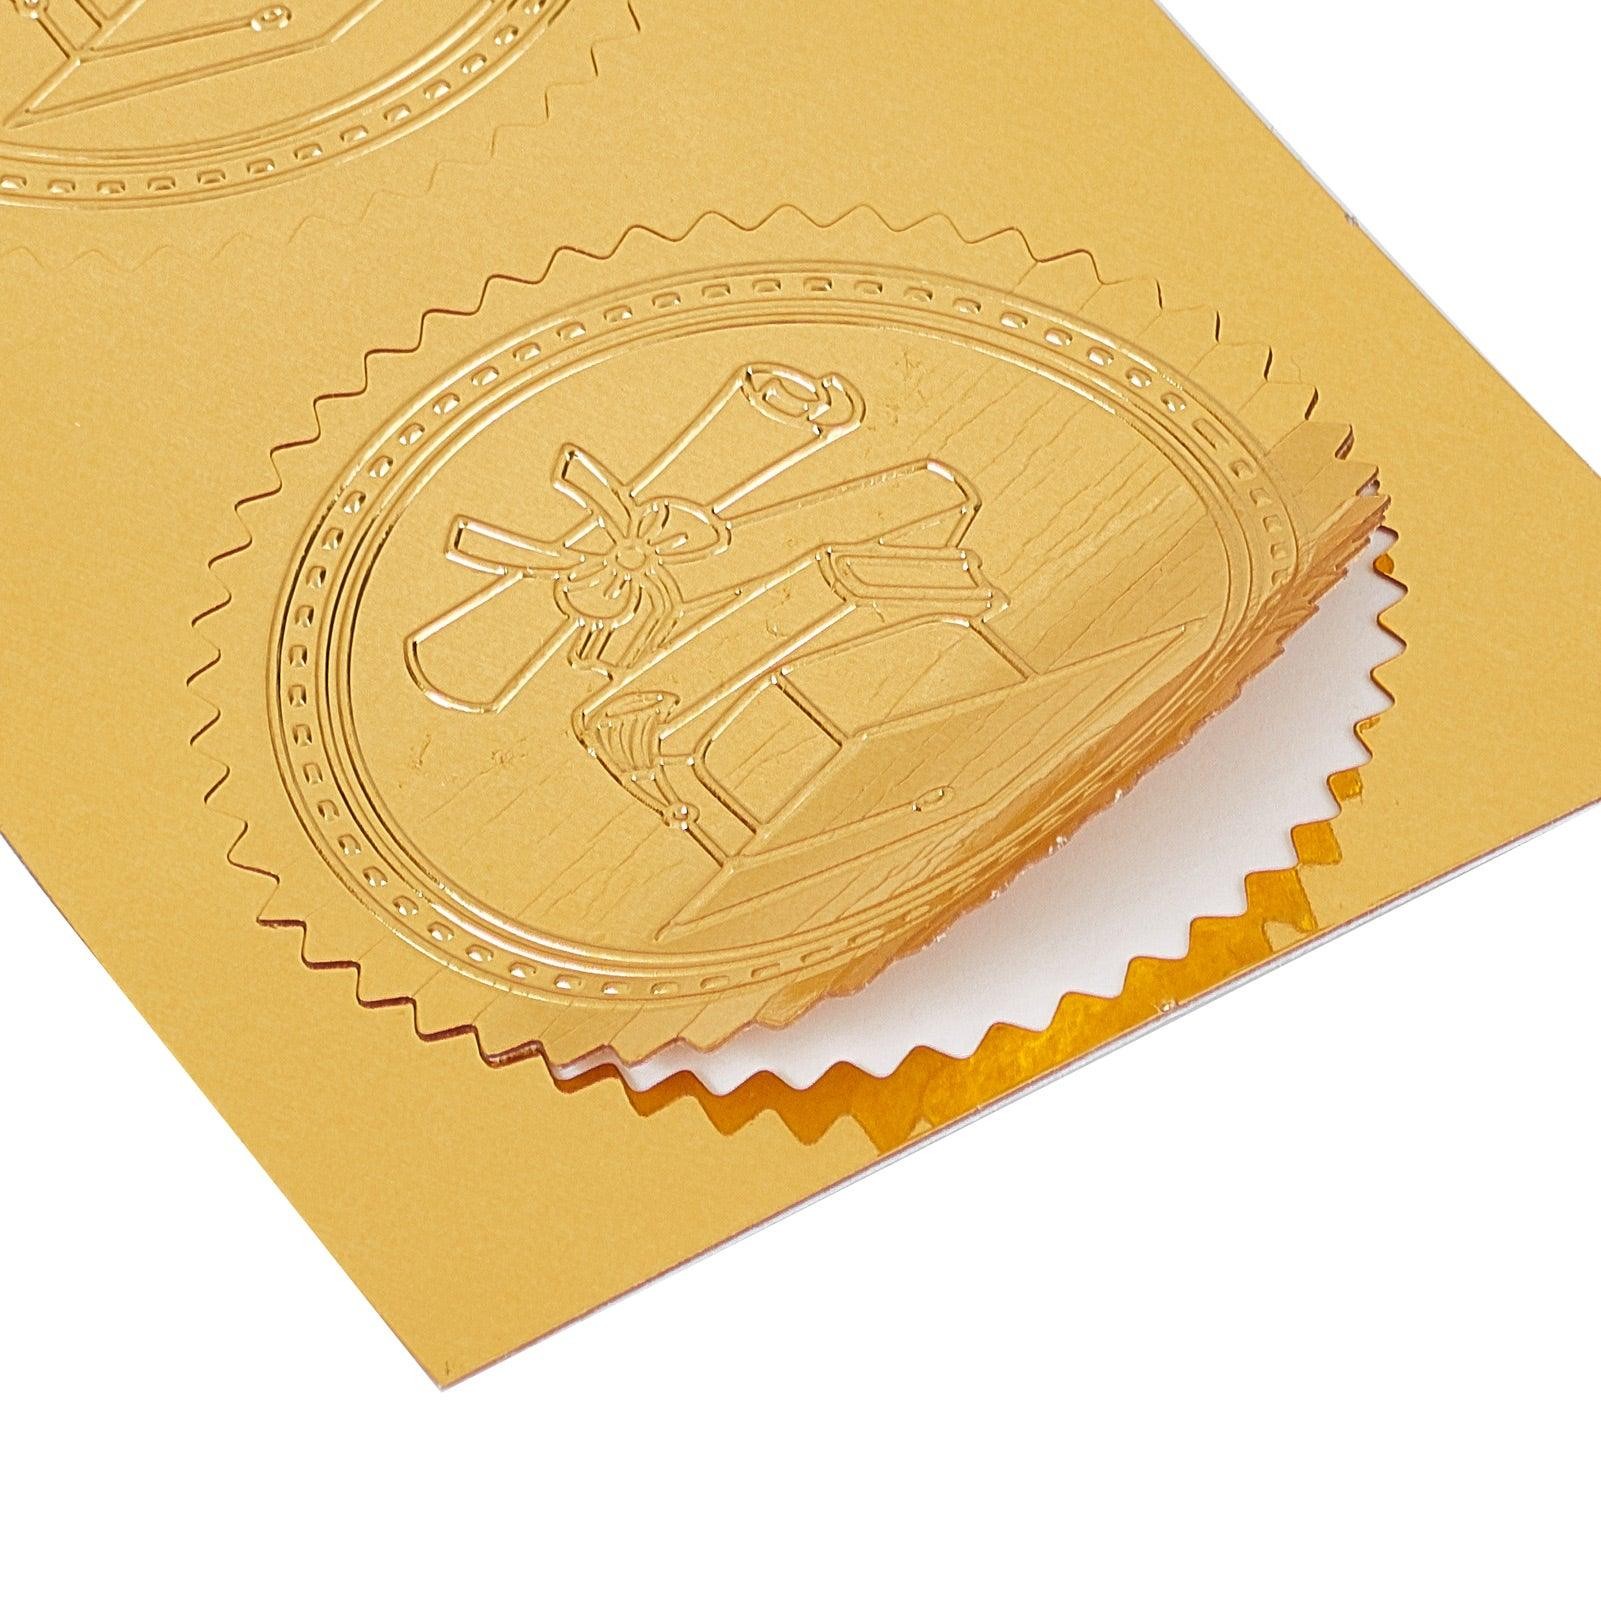 100pcs Embossed Gold Foil Certificate Seals Self Adhesive Stickers-10